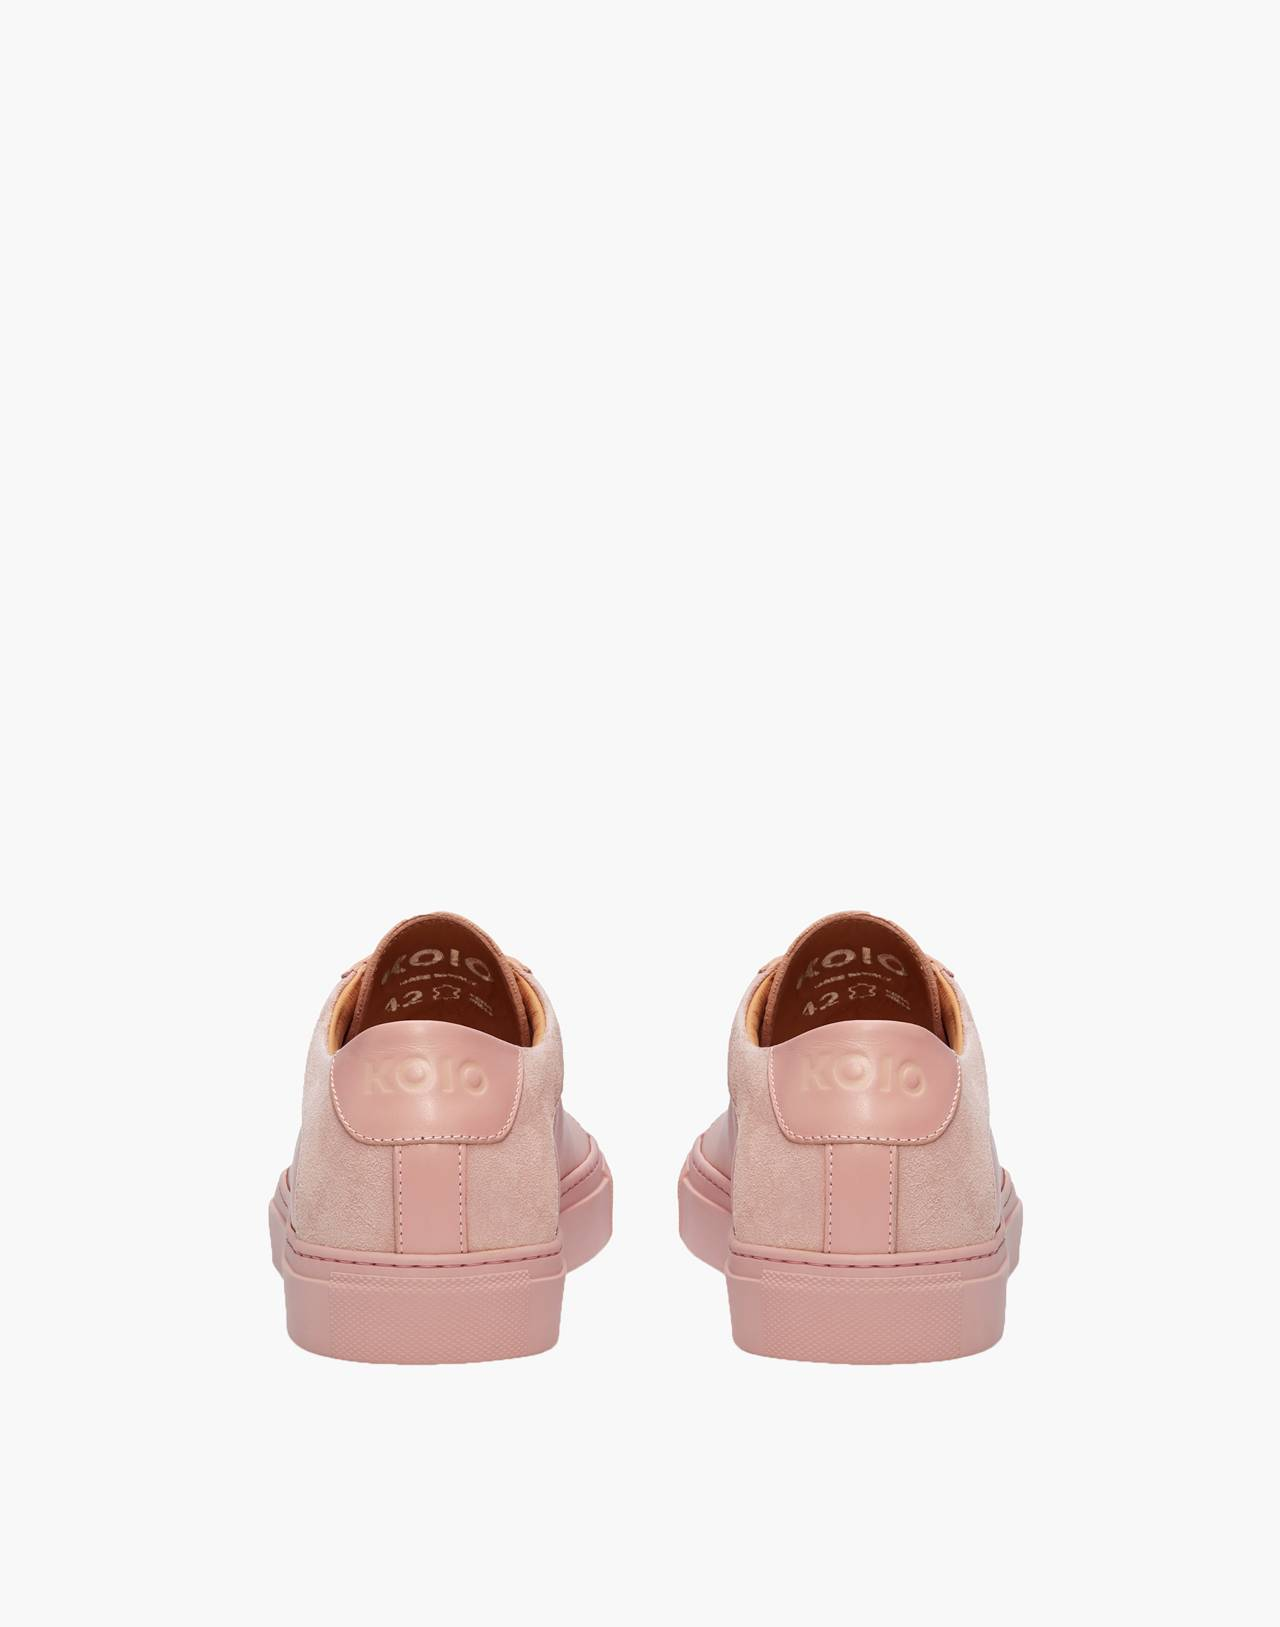 Unisex Koio Capri Fiore Low-Top Sneakers in Pink Leather in pink image 3